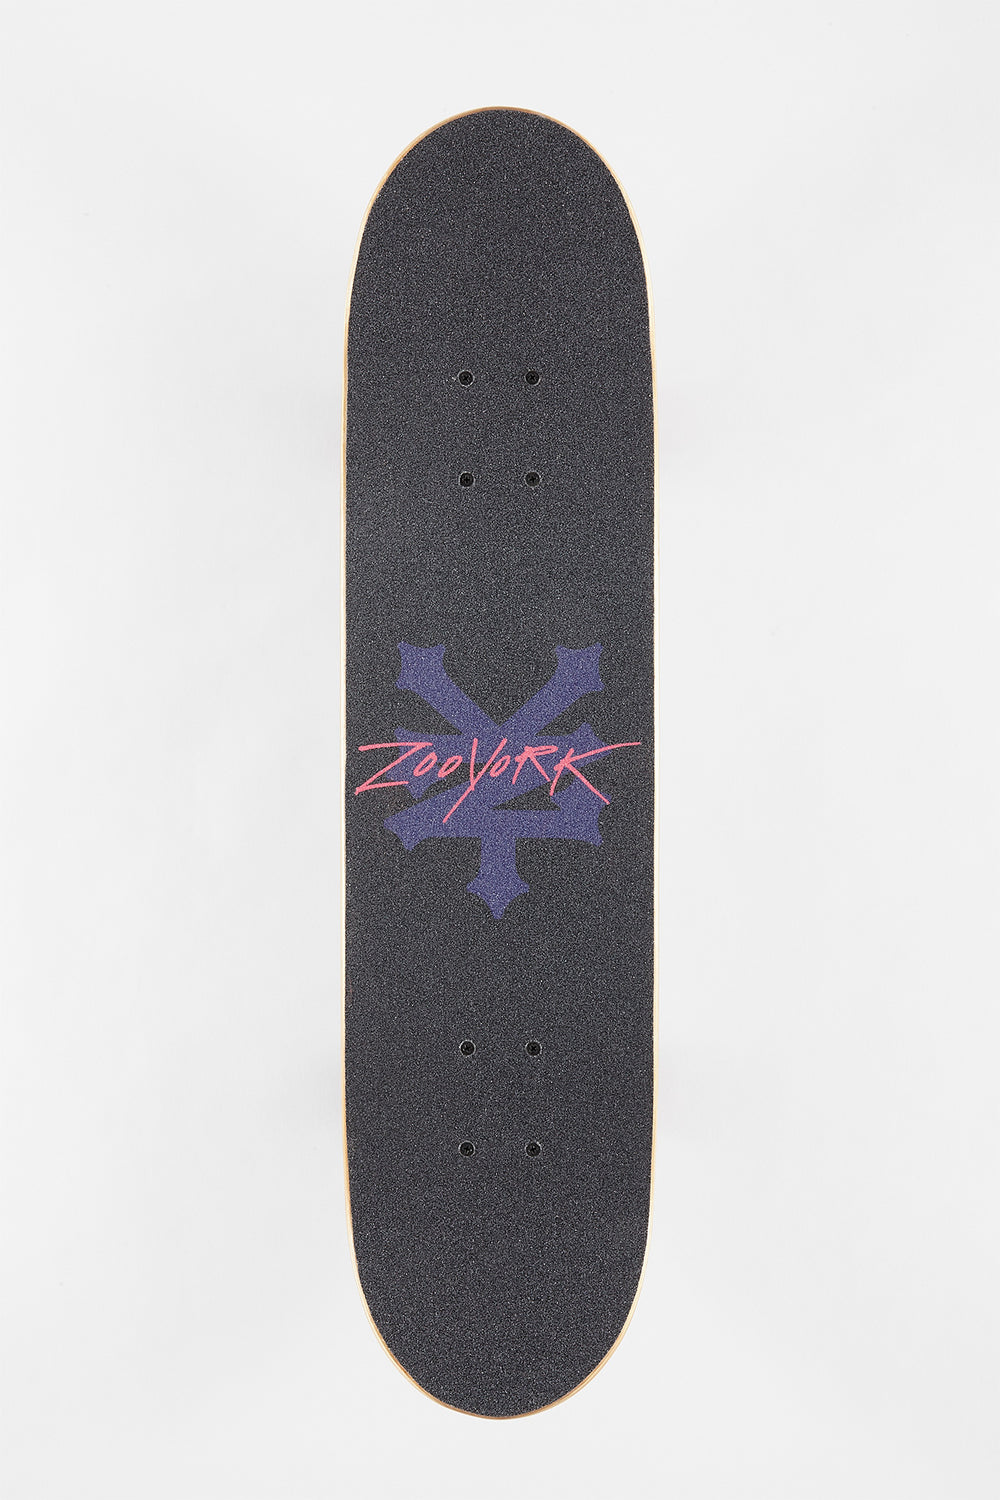 Zoo York NYC Skeleton Skateboard 7.75